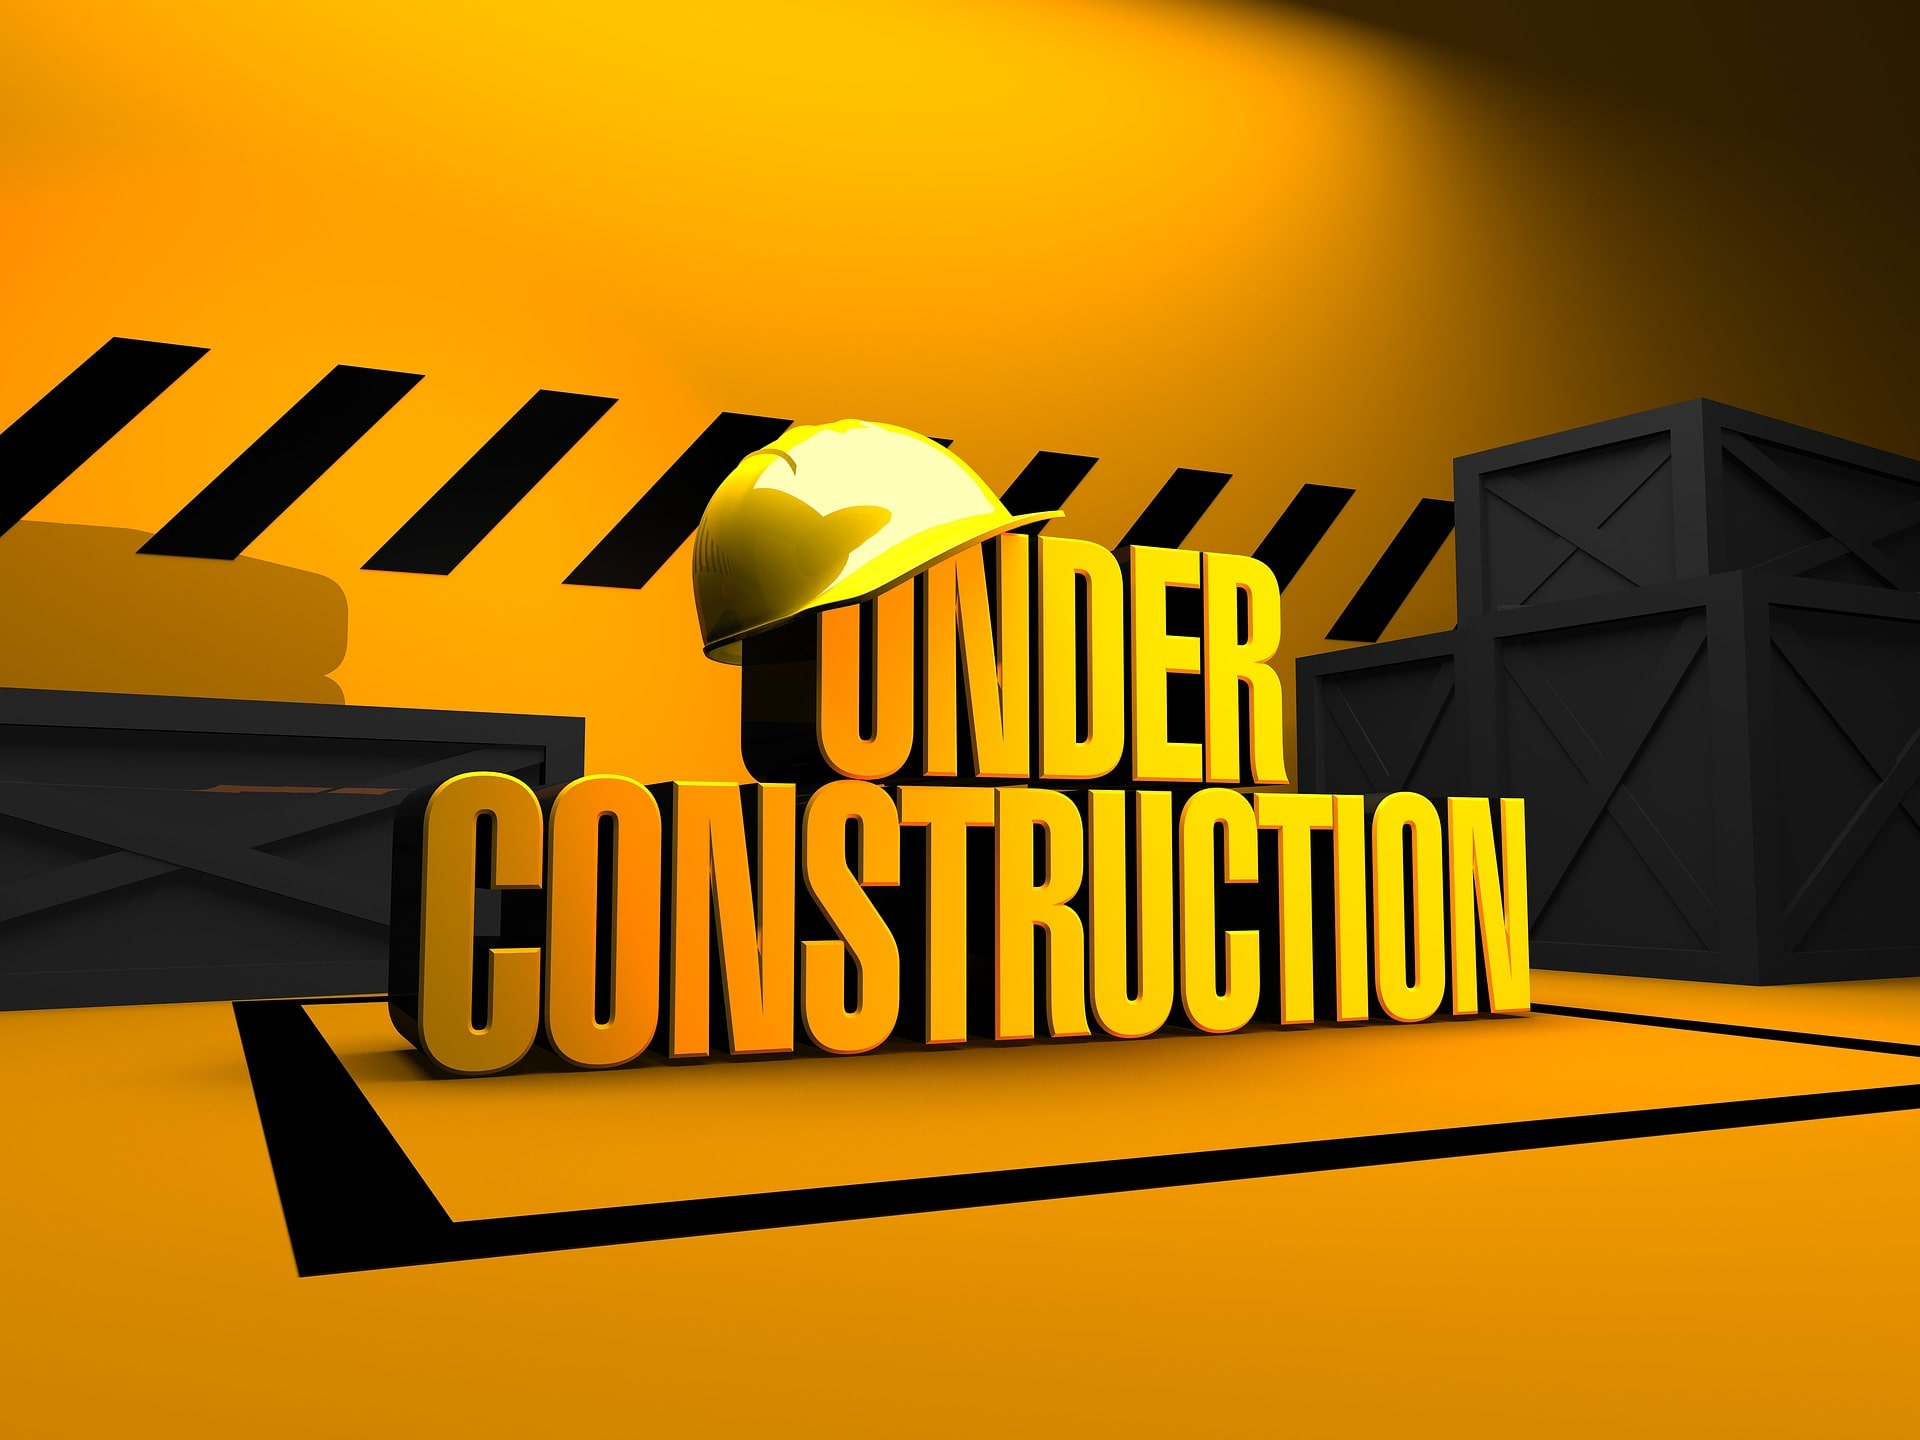 Under Construction image with box and Hard Hat